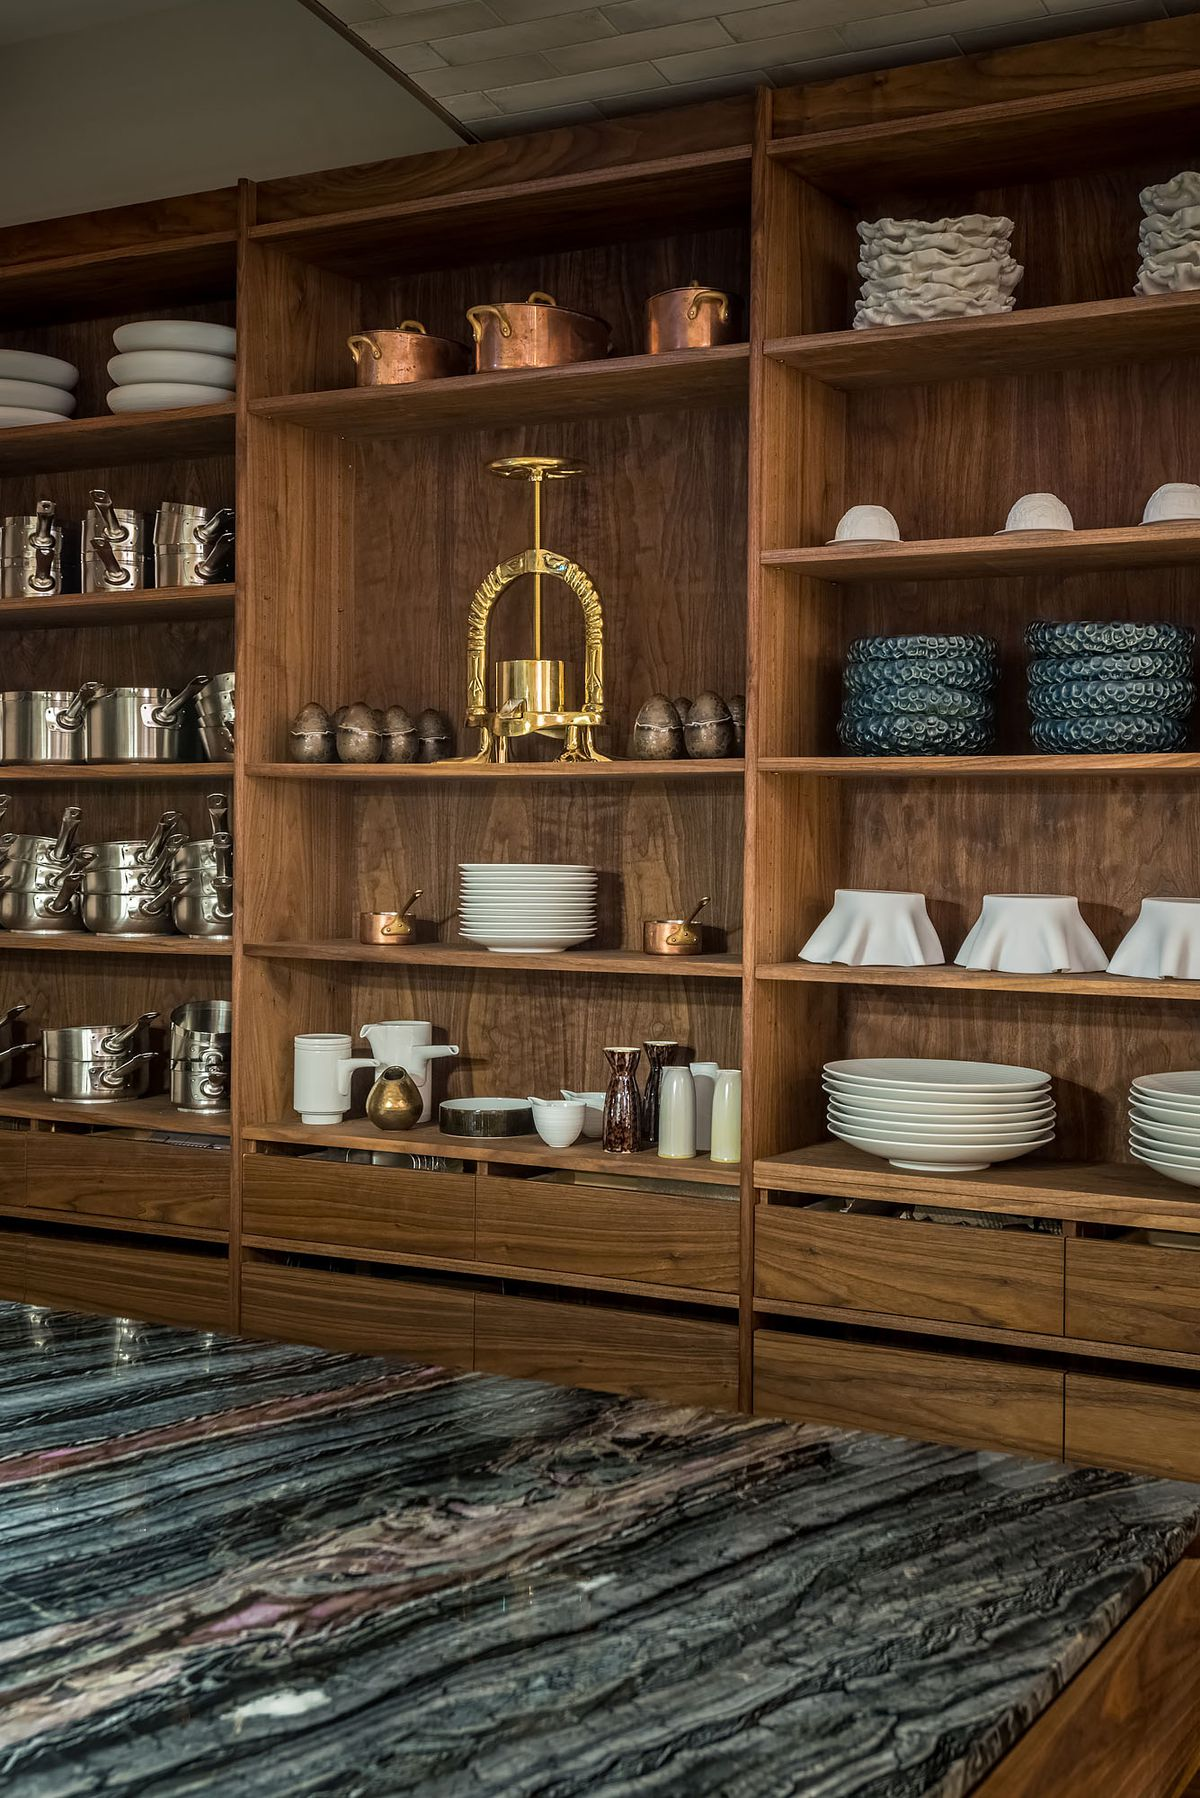 Fine dining plates and accoutrement sit on shelves.